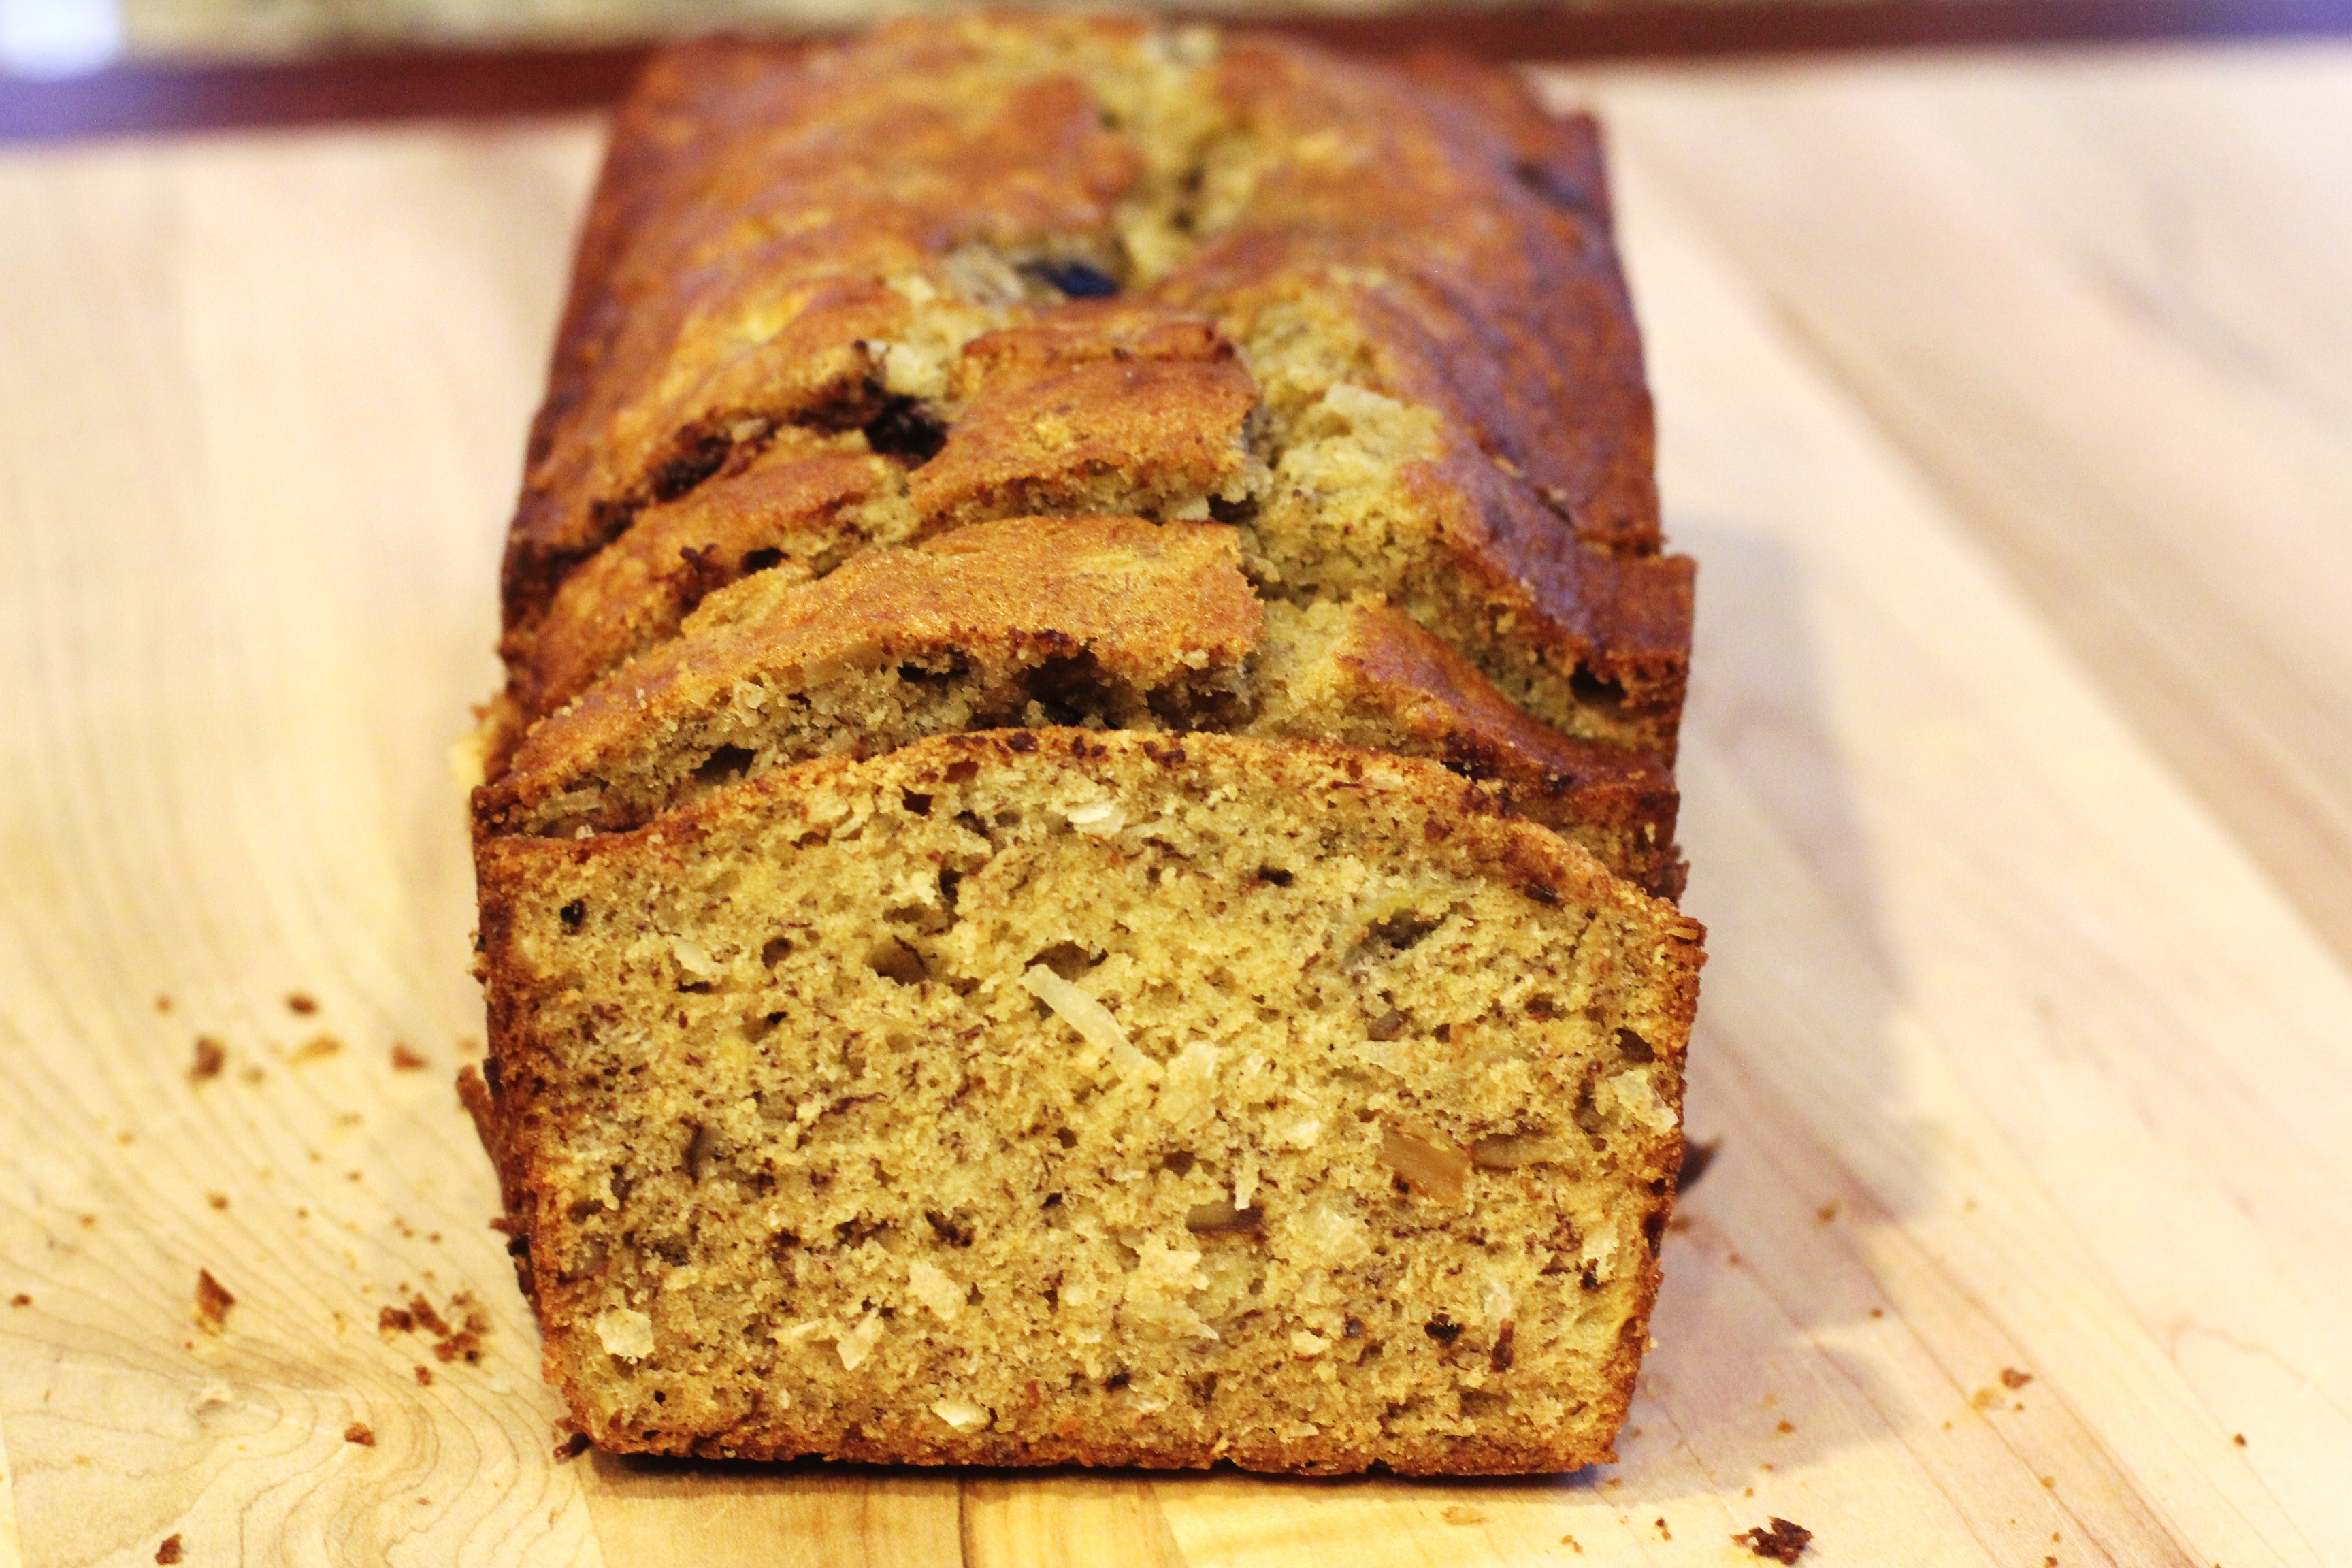 Recipe: Banana Bread with Walnuts, Coconut and Chocolate Chips